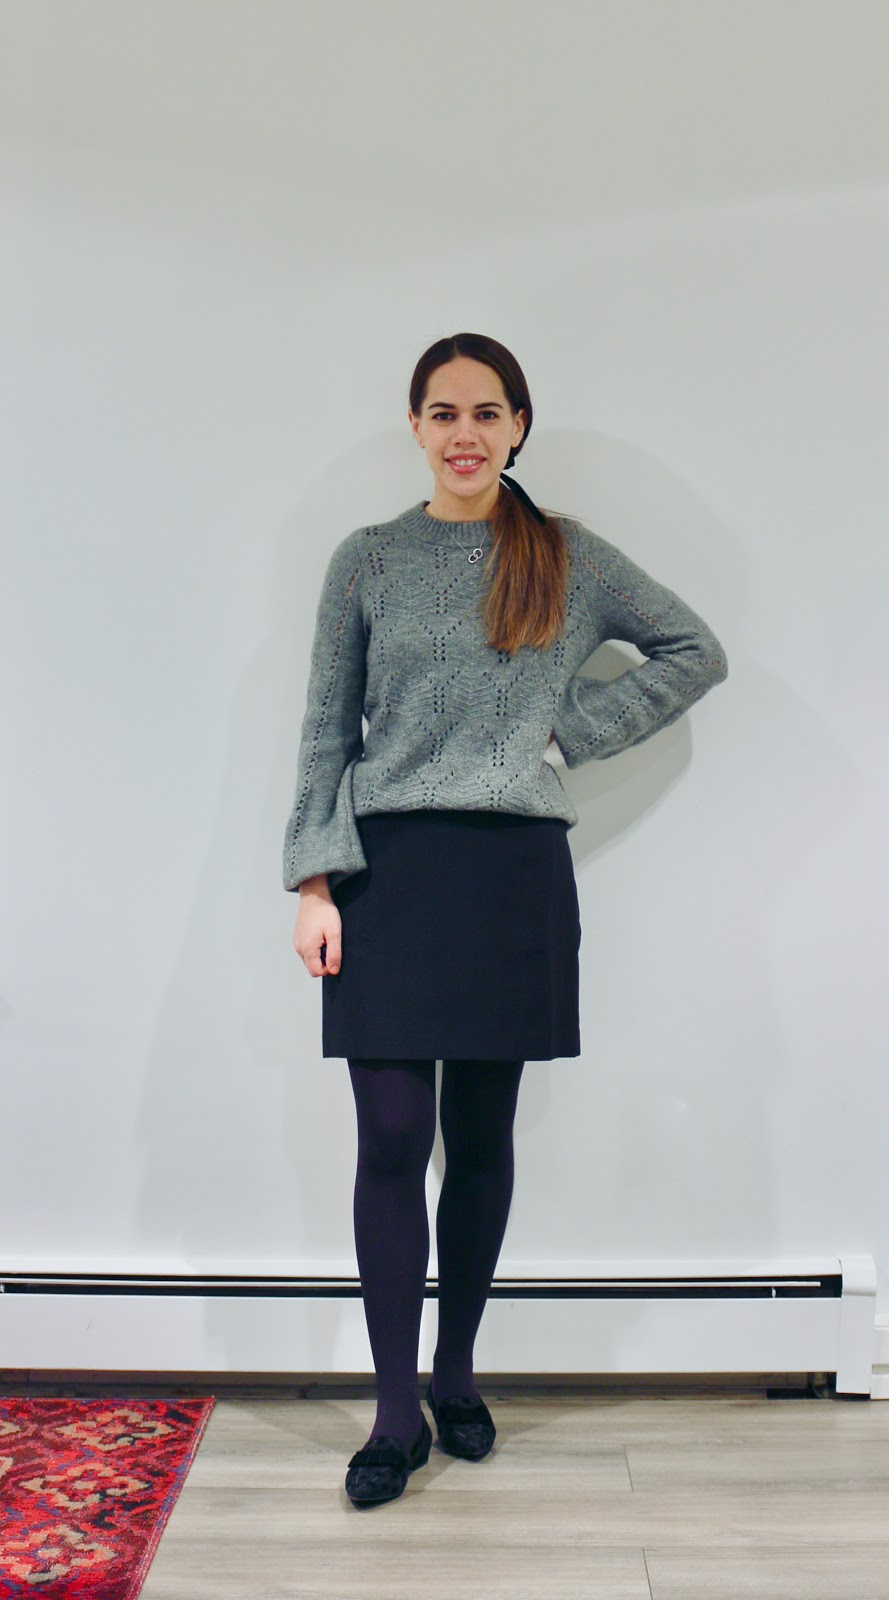 Jules in Flats - Grey Sweater + Velvet Bow (Business Casual Winter Workwear on a Budget)